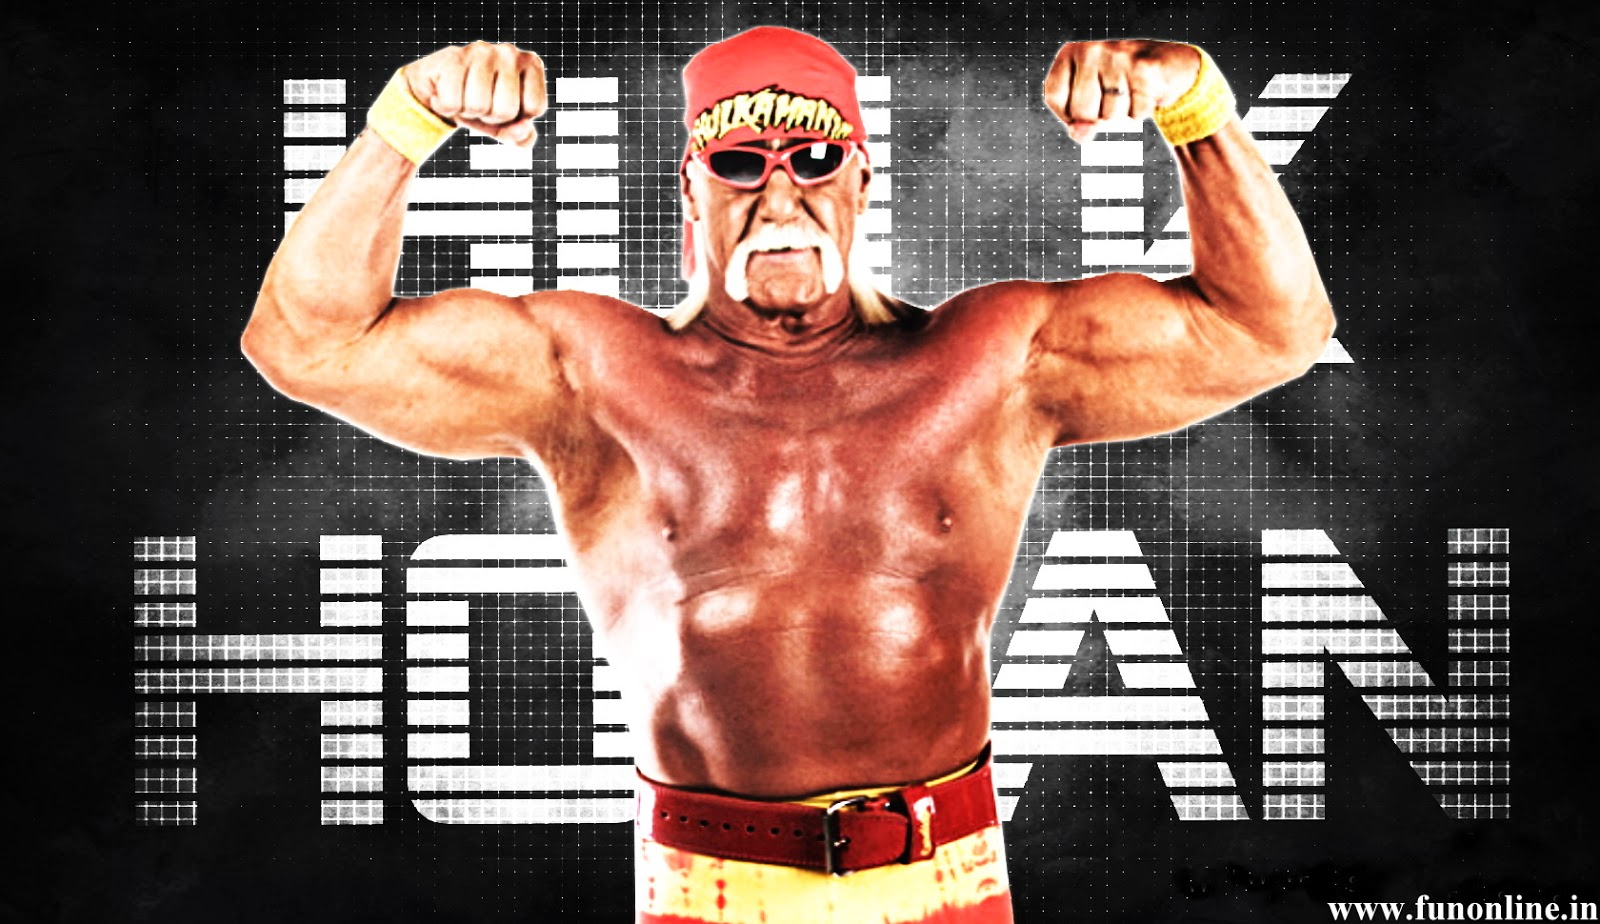 Hogan Hulk Hulk Hogan 2014 Hd Wallpapers Wrestling